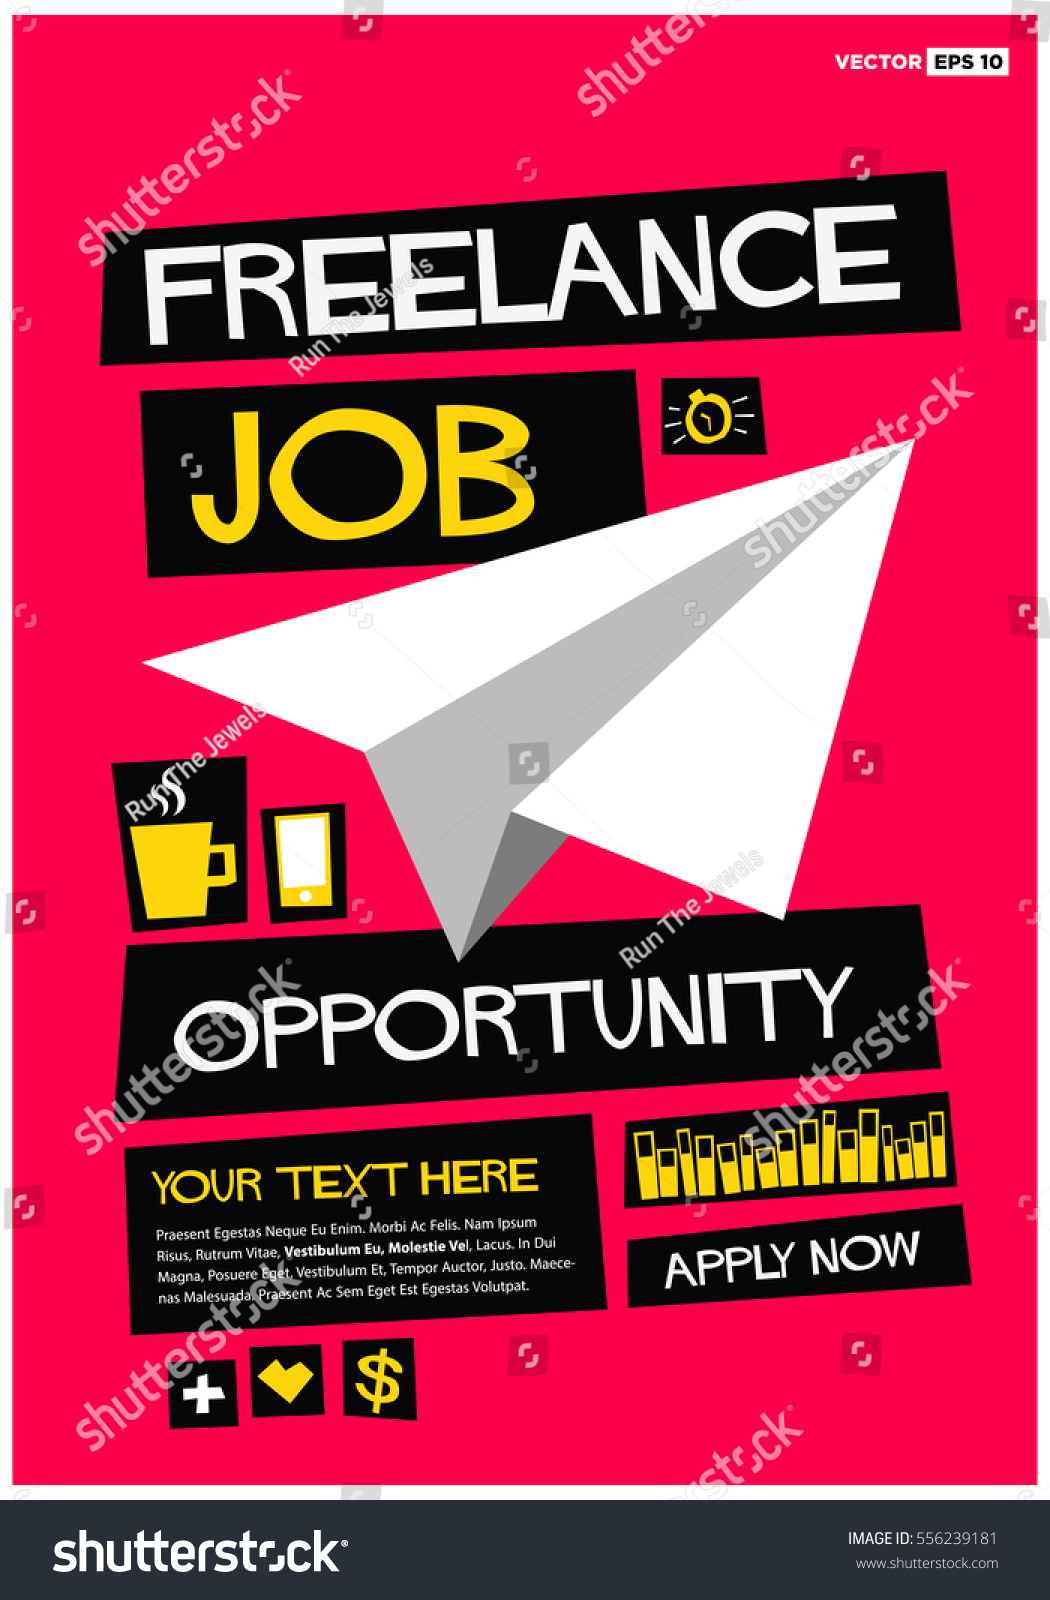 lance job opportunity apply now flat stock vector   lance job opportunity apply now flat style vector illustration recruiting hiring poster